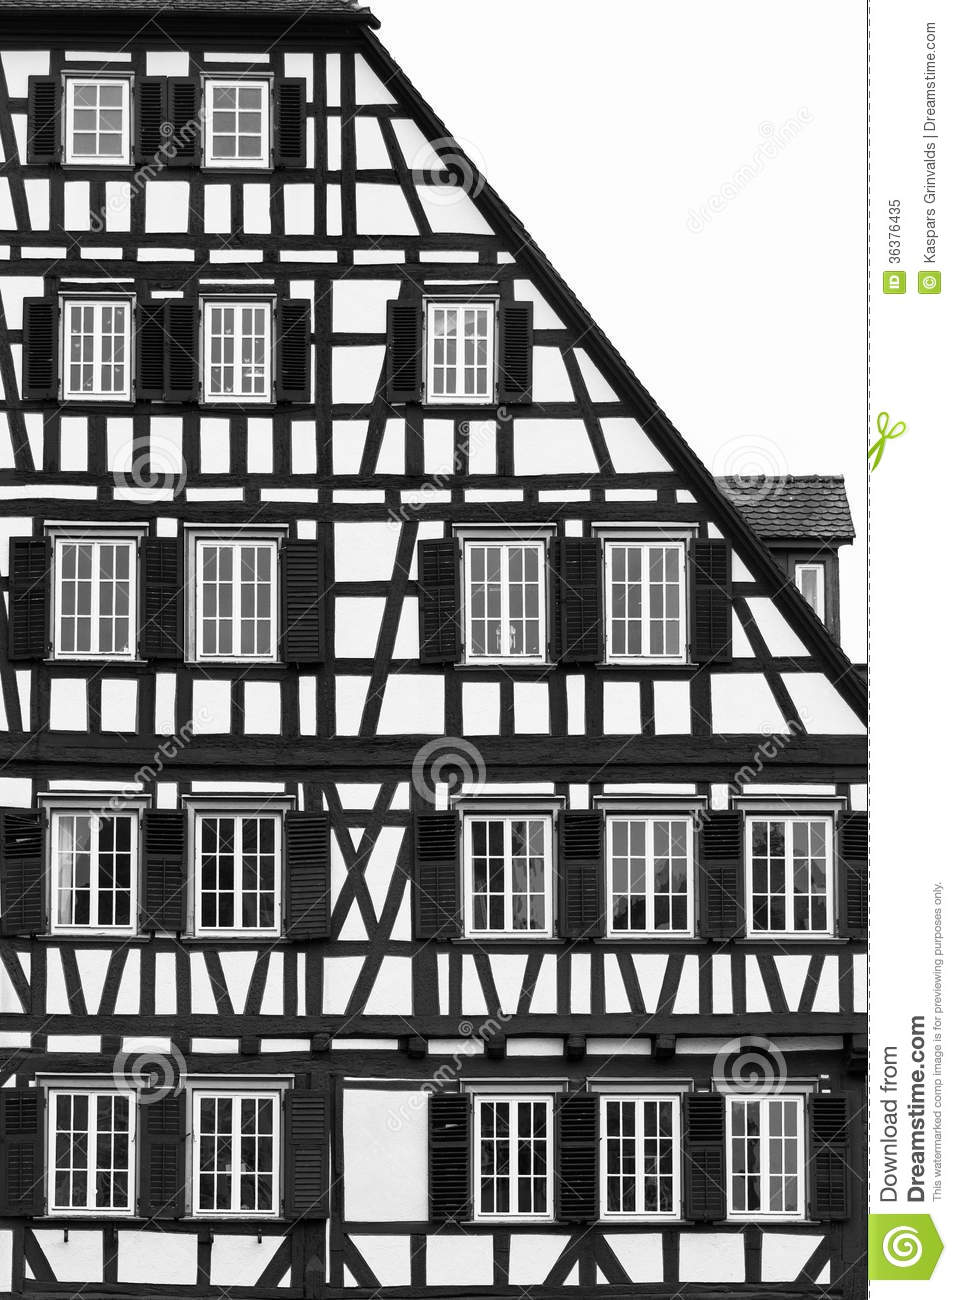 Fachwerk architecture style royalty free stock photo for Fachwerk 3d